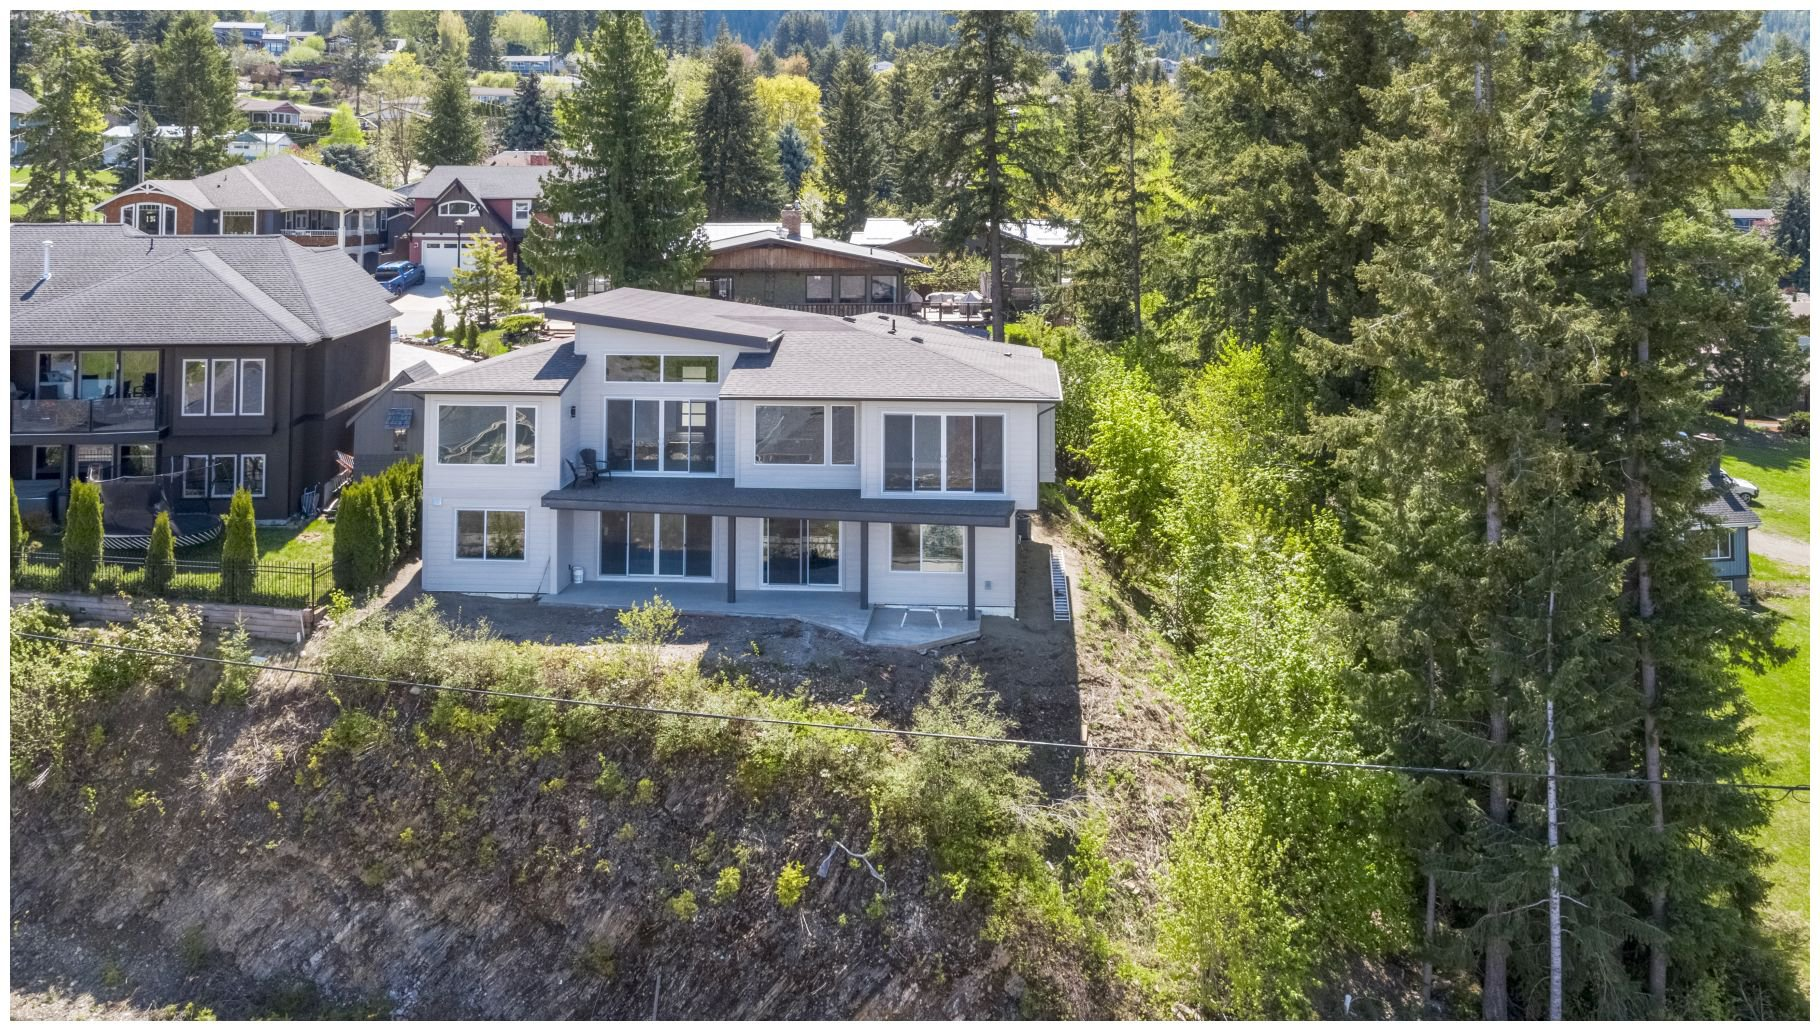 Main Photo: 1411 Southeast 9th Avenue in Salmon Arm: Southeast House for sale : MLS®# 10205270